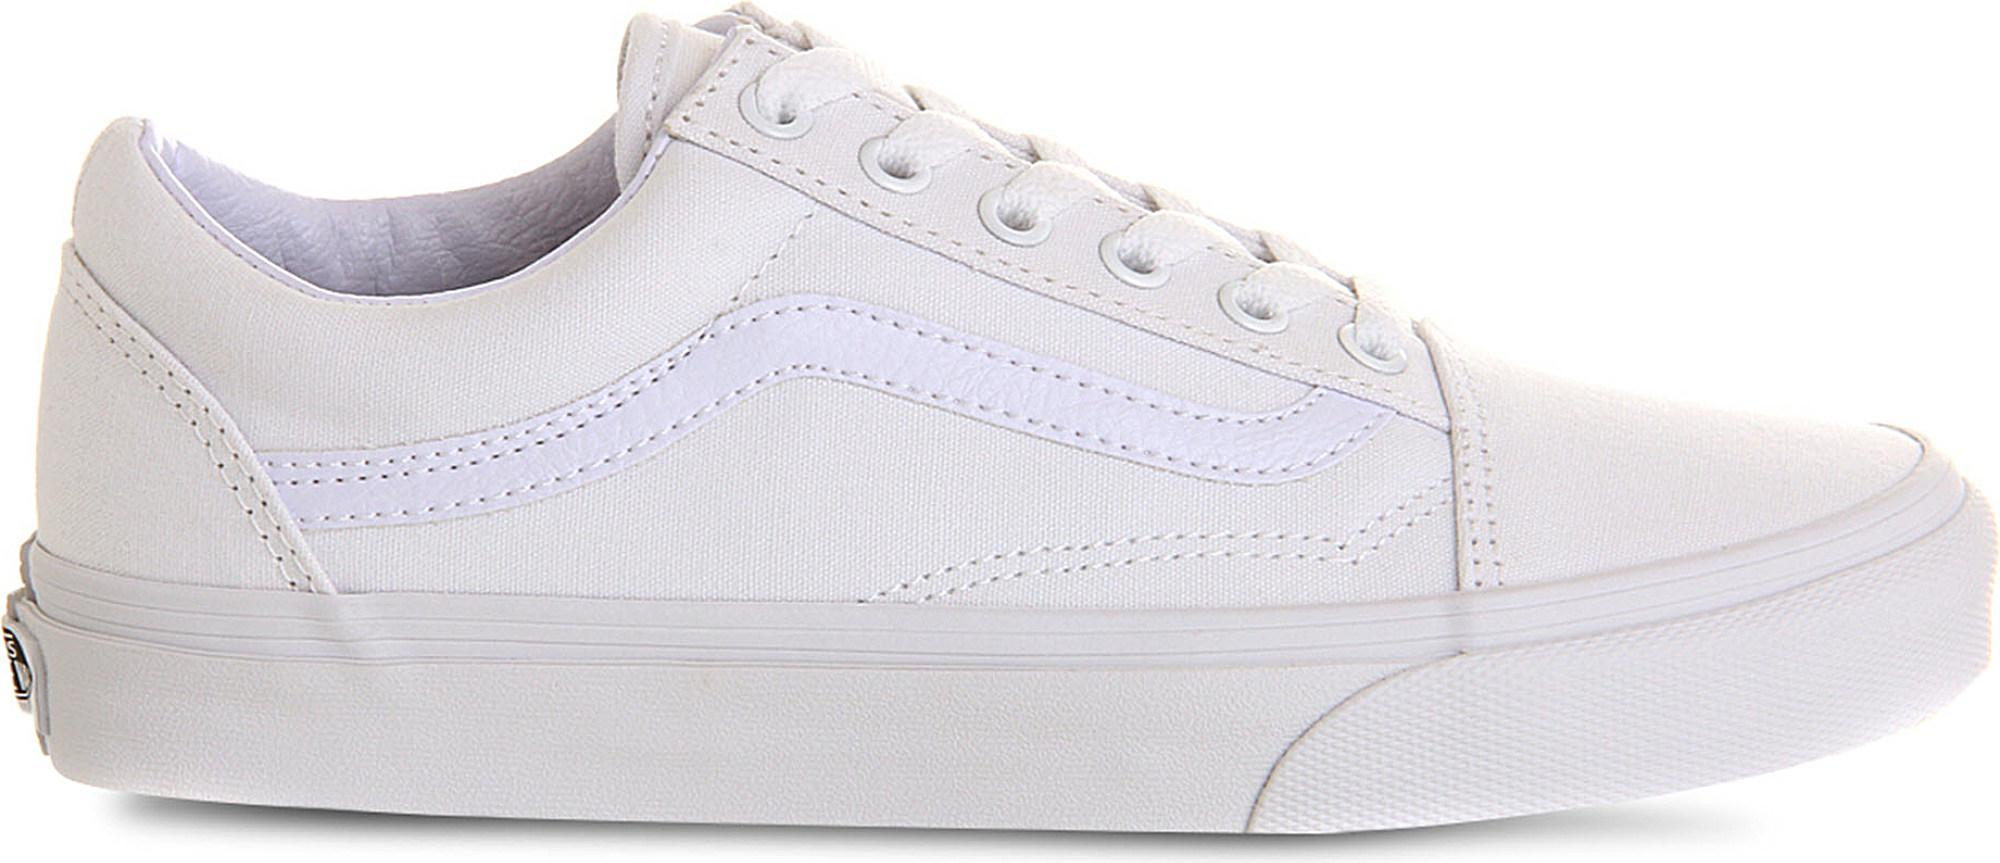 8e6244c37c Vans Old Skool Trainers in White for Men - Save 20% - Lyst